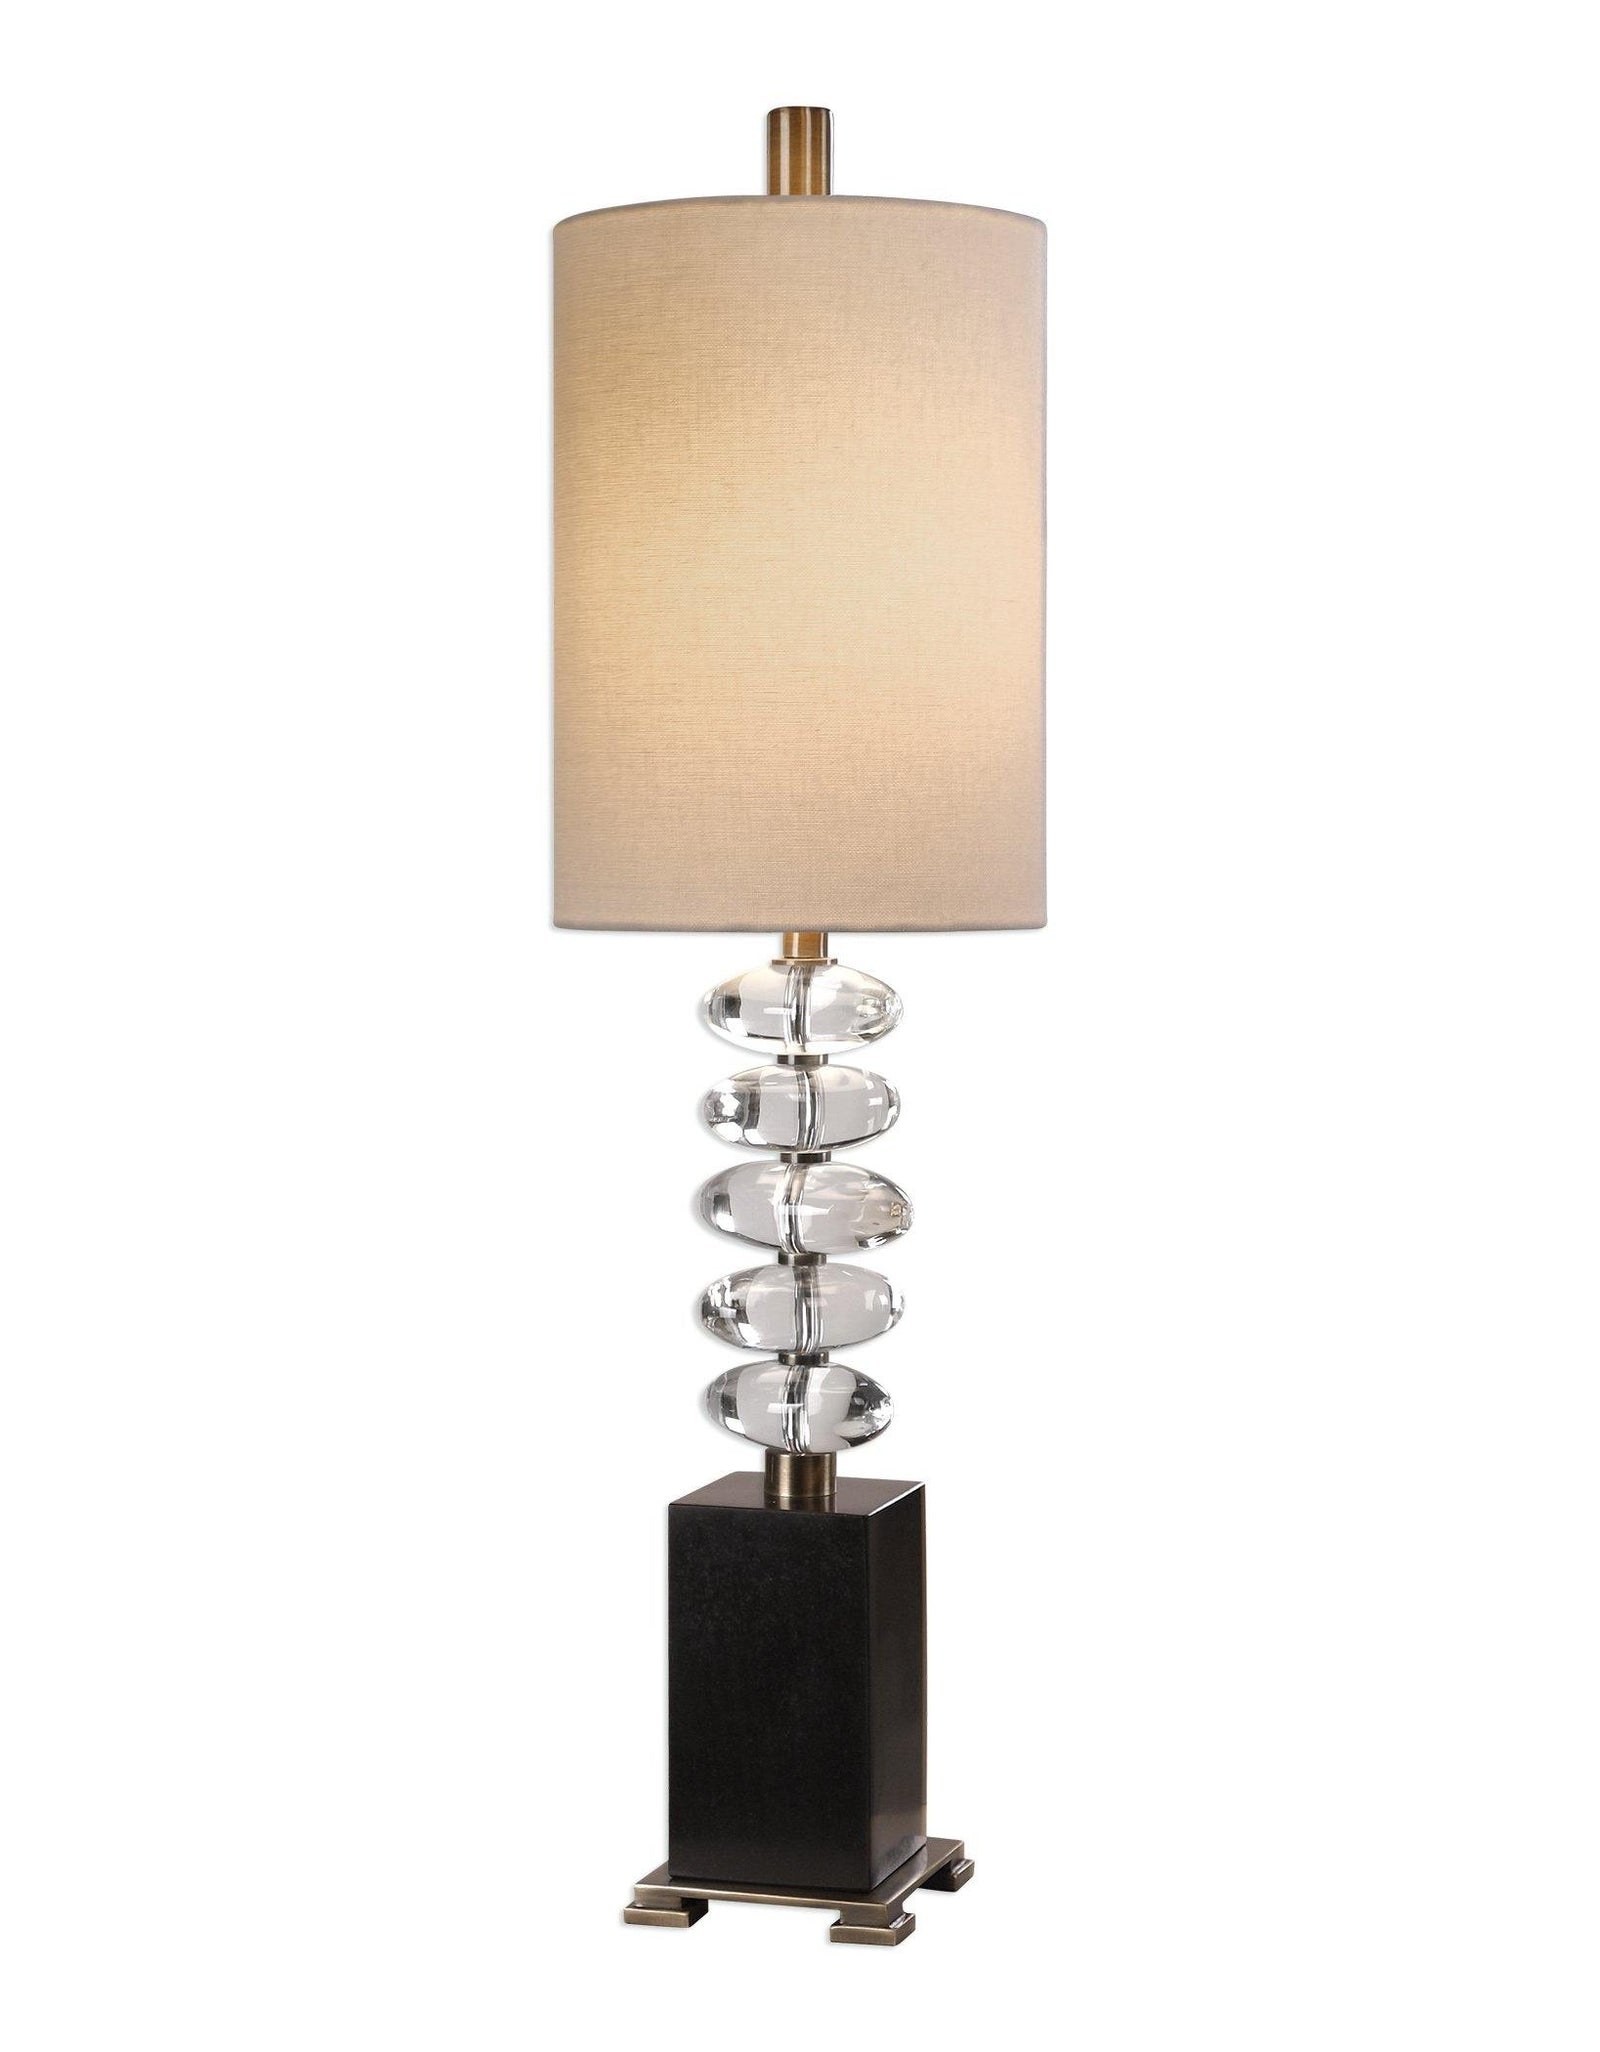 Edine Lamp (R29556-1) - Mindy Brownes Interiors - Genesis Fine Arts